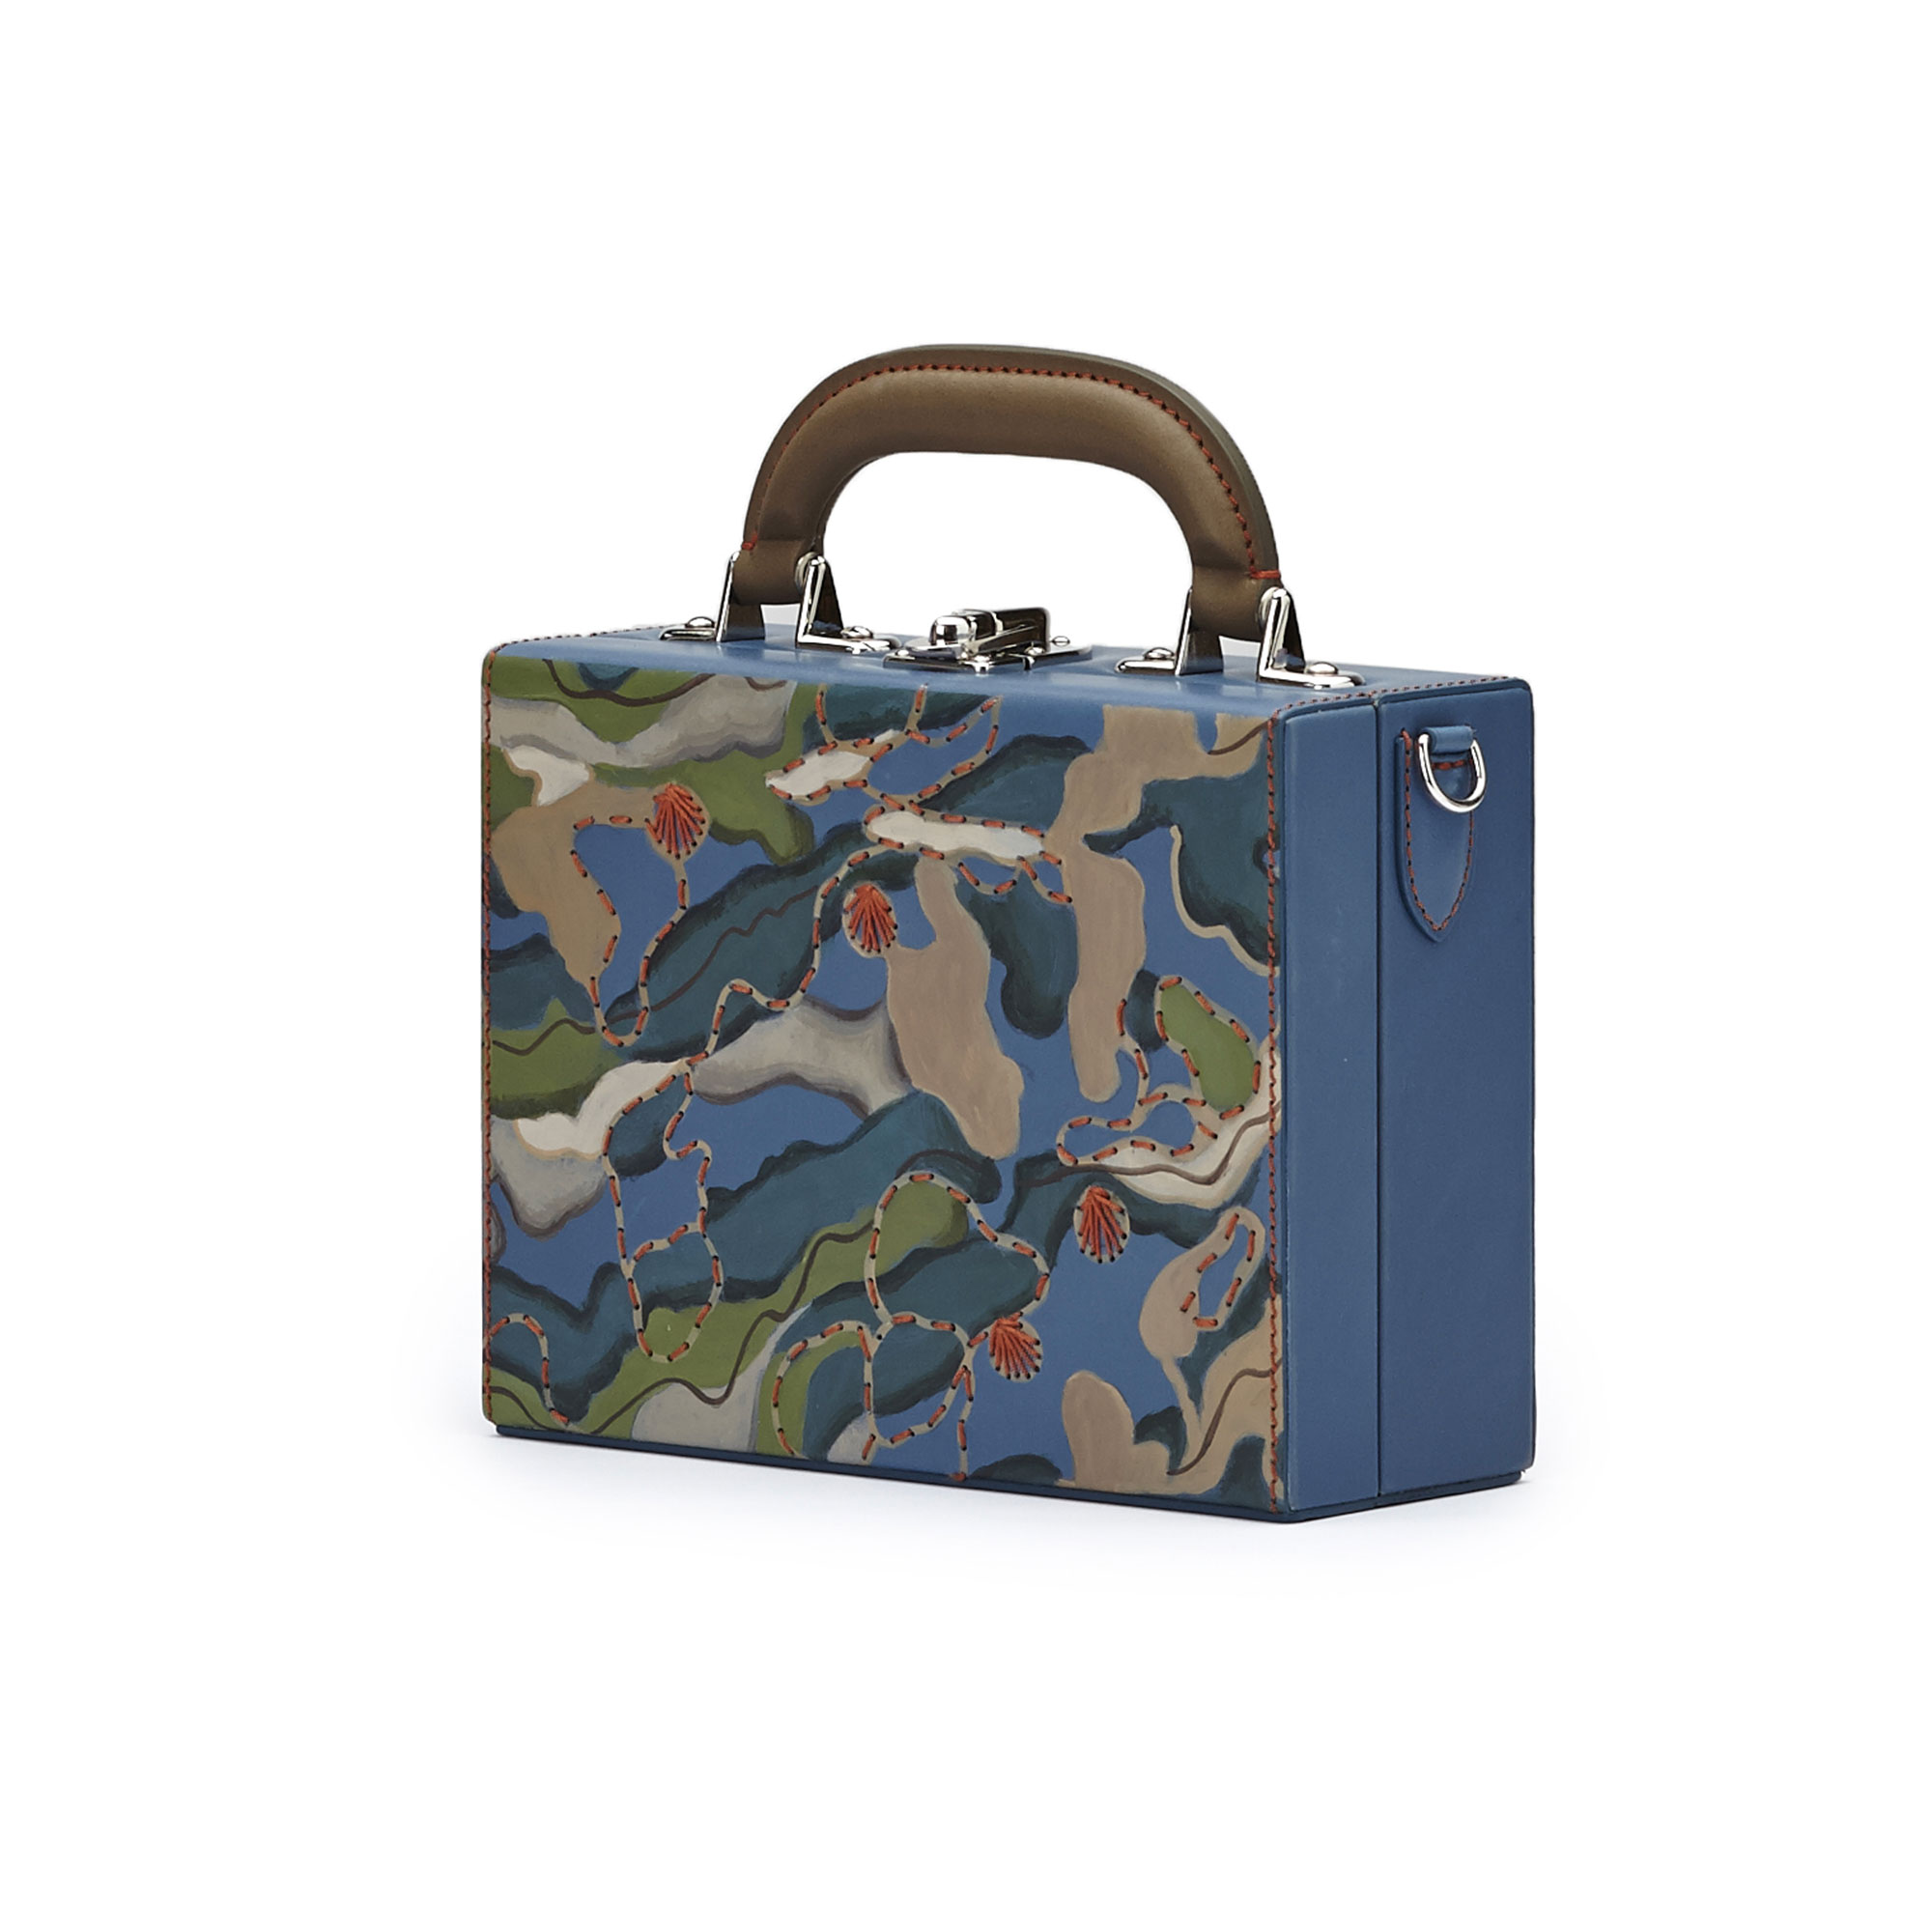 The hand-painted camouflage effect french calf Mini Squared Bertoncina bag by Bertoni 1949 02